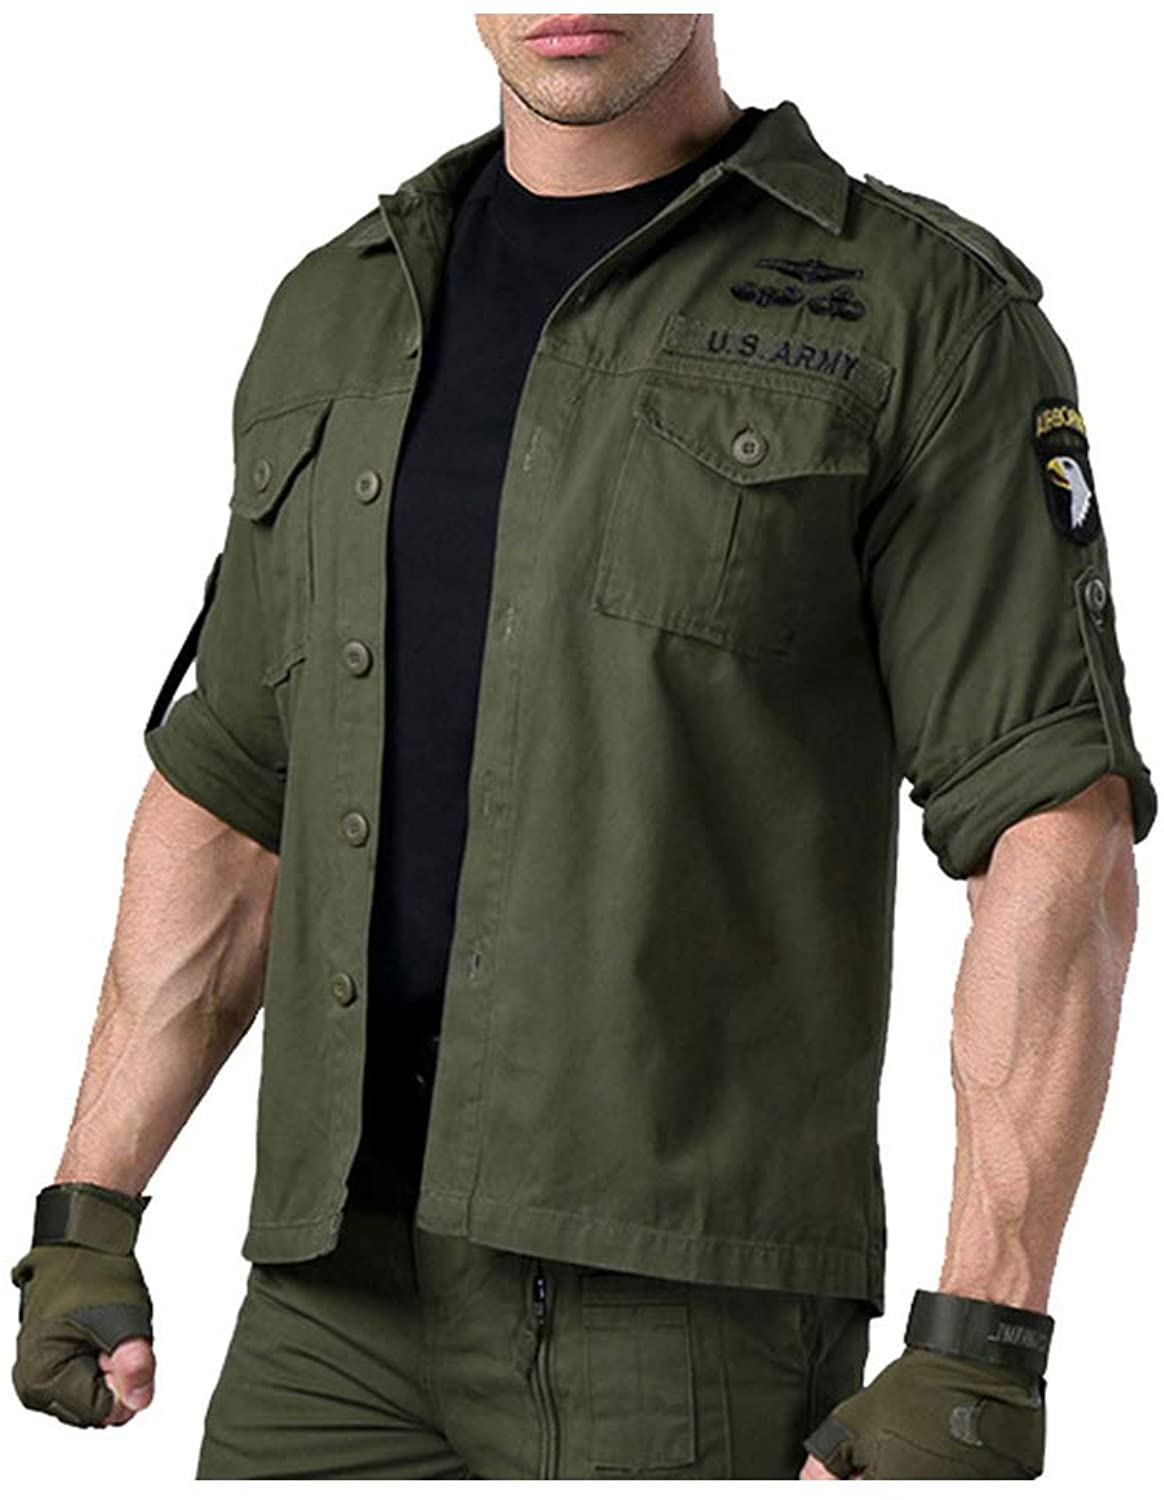 Men Camouflage SWAT Combat Long Sleeve Shirt Army Force Pockets Cotton Outwear Coats Military Tactical Shirts